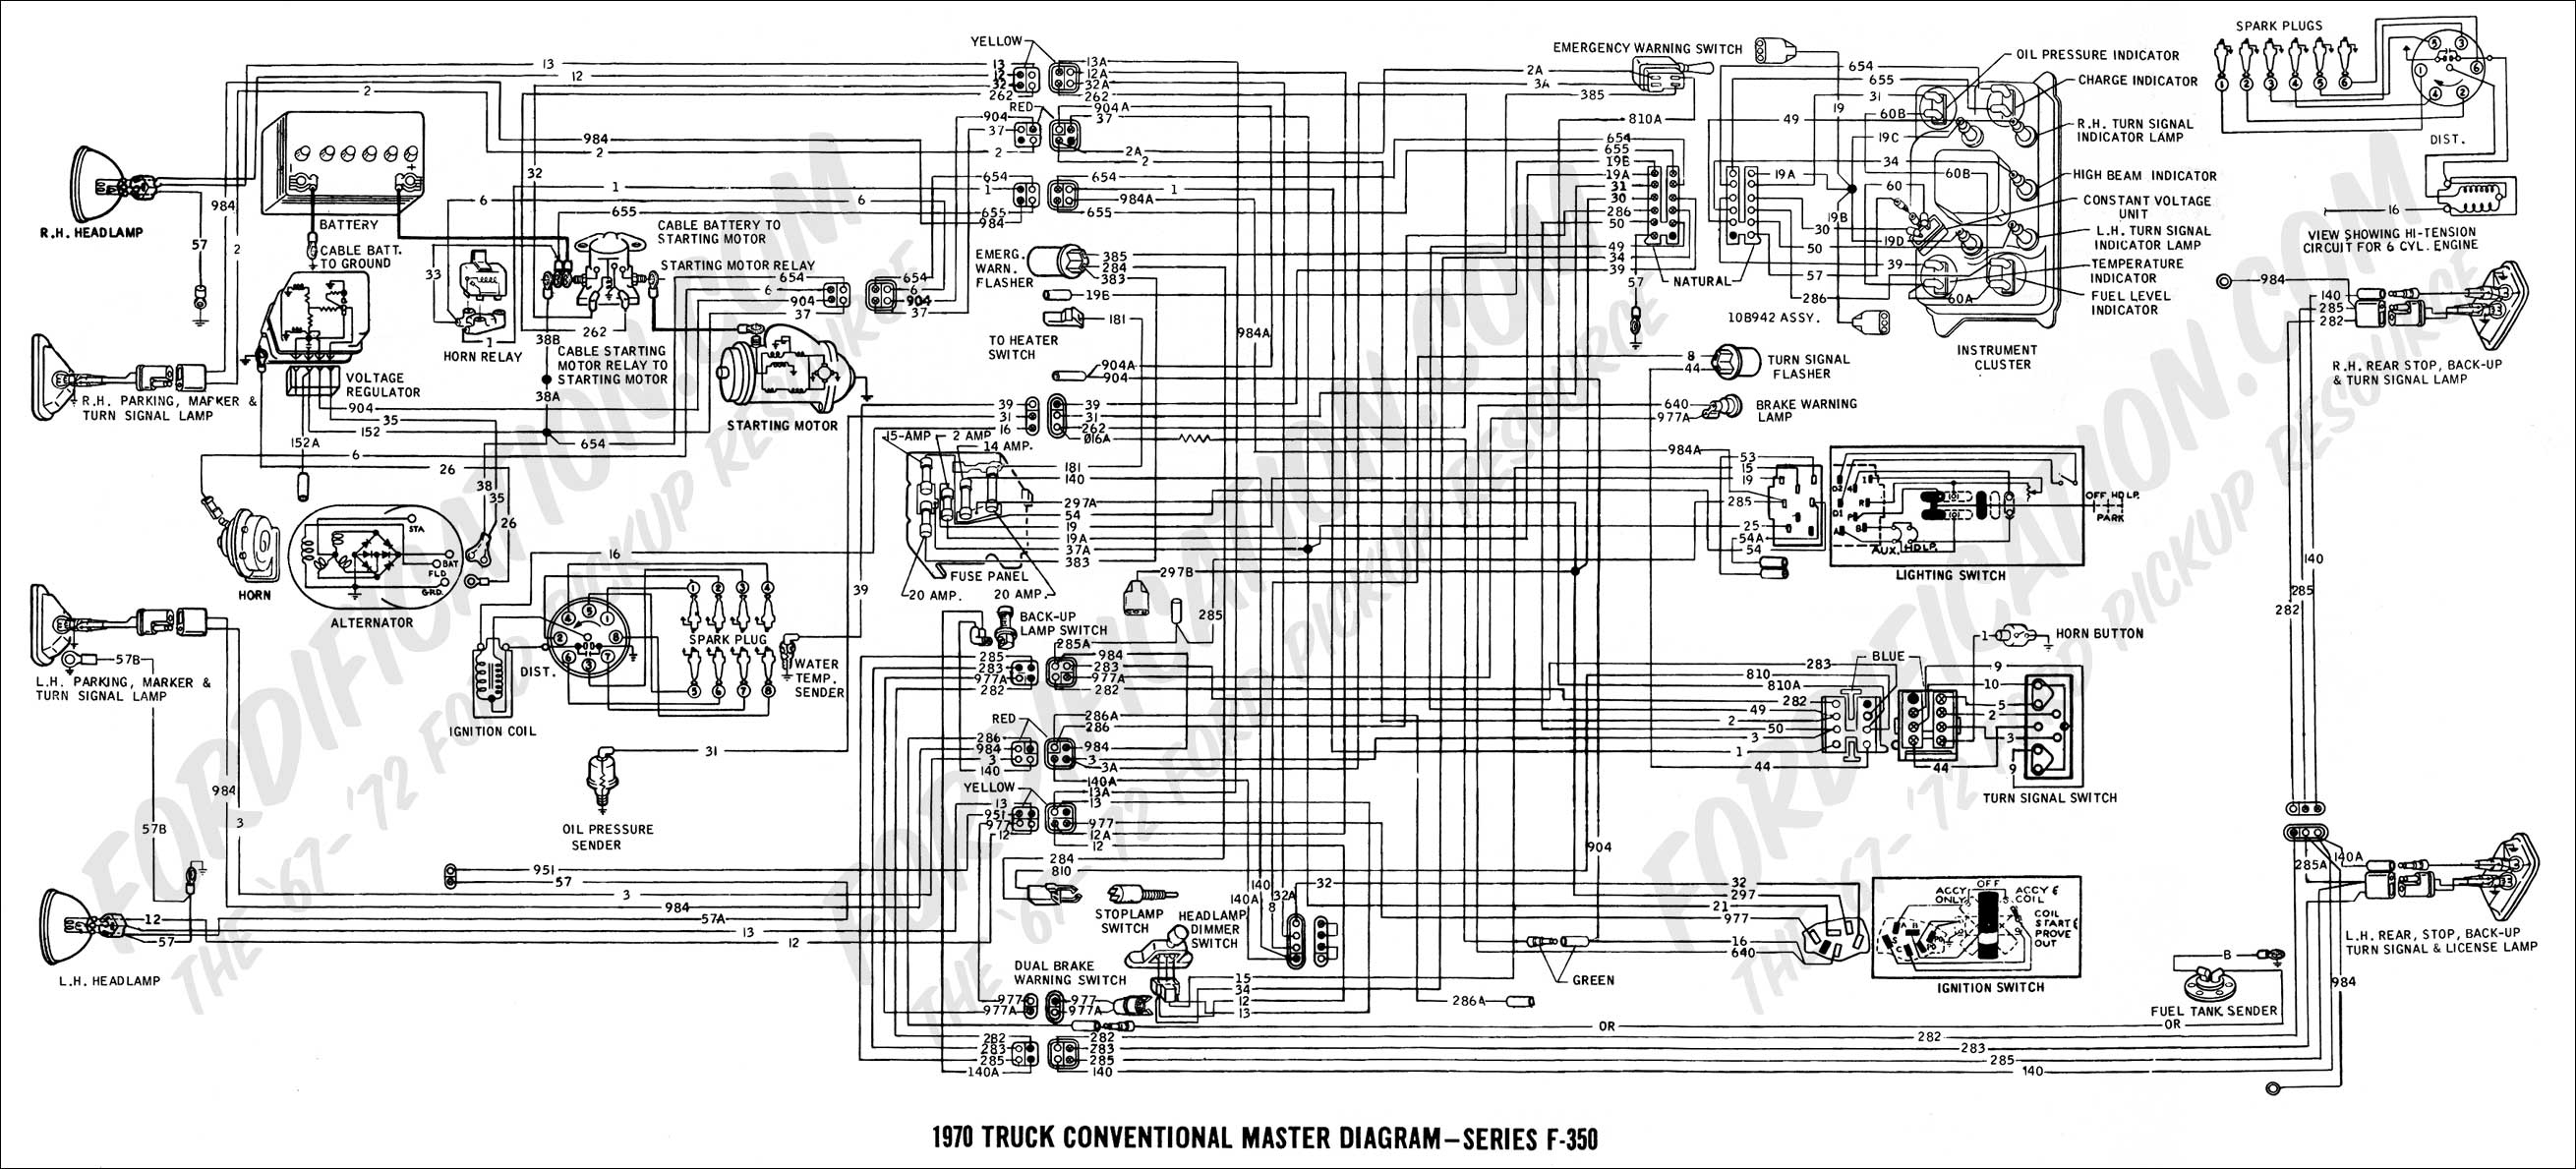 ford f350 trailer wiring diagram Collection-Ford F350 Trailer Wiring Diagram Unique Inspirational 2003 Ford F350 Wiring Diagram 37 7 Blade Trailer 20-c